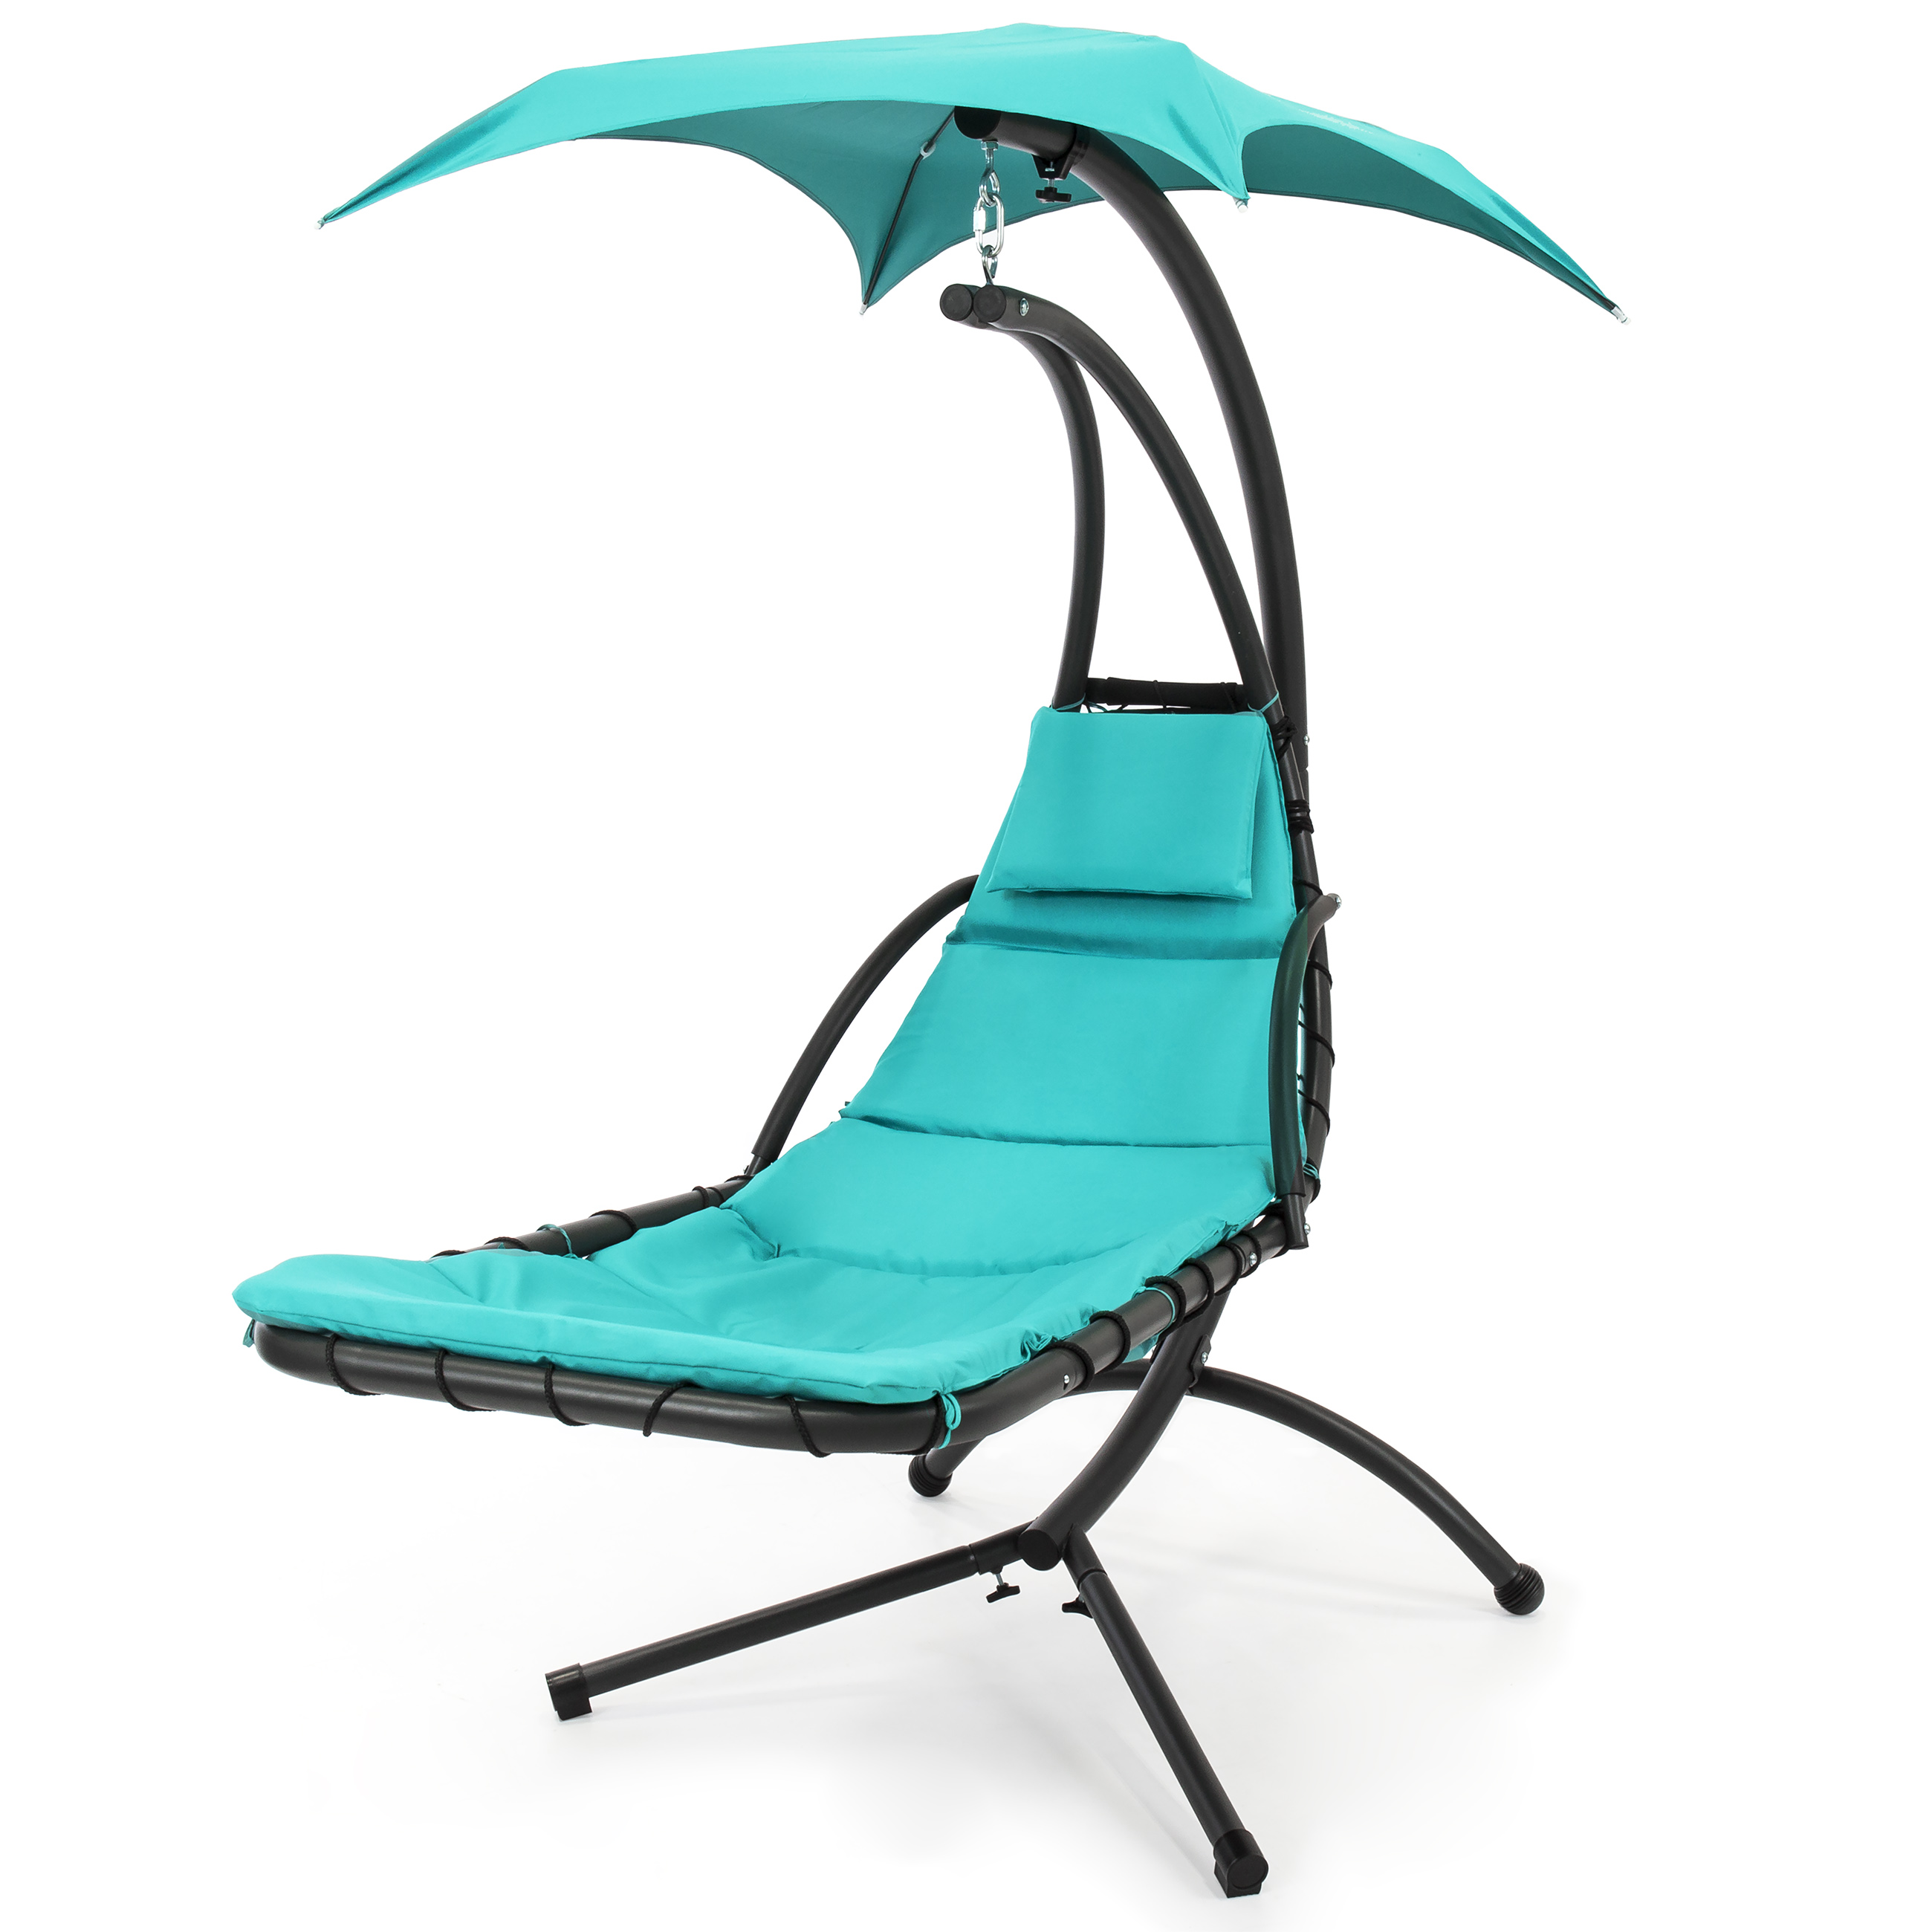 ikea air free chair ekorre element hammock seat standing with home pin design hanging